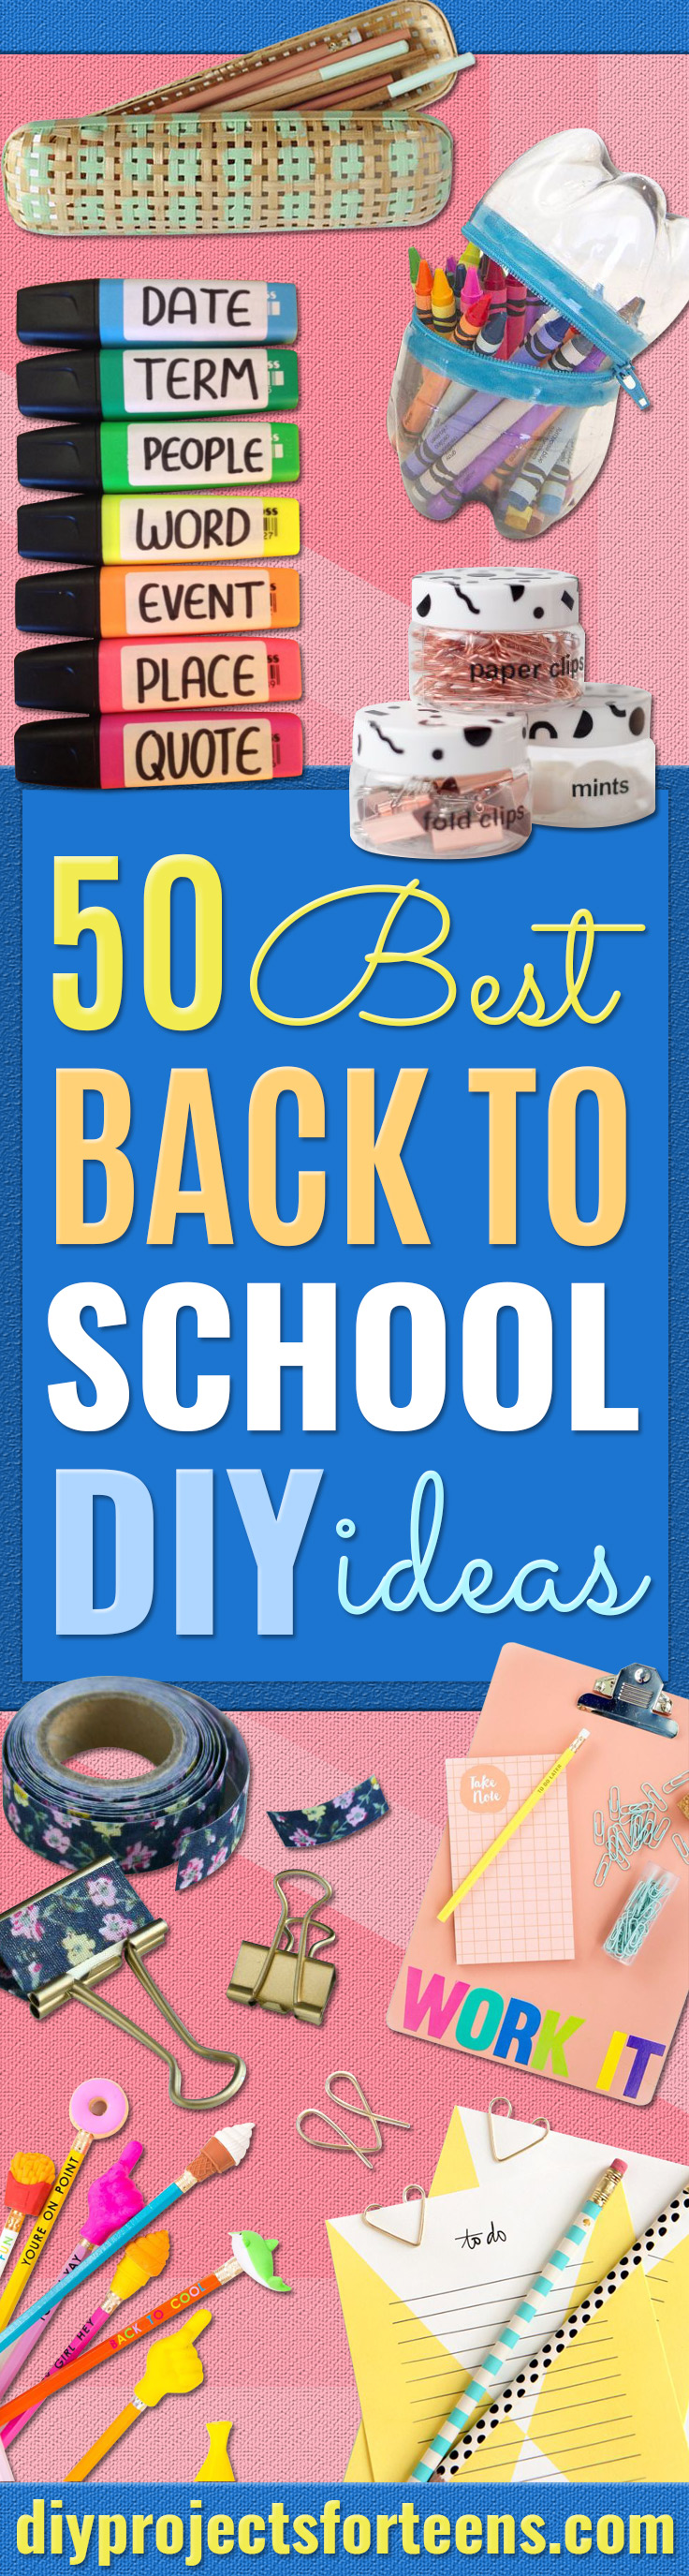 50 best back to school diy ideasg diy school supplies easy crafts and do it yourself ideas for back to school solutioingenieria Image collections